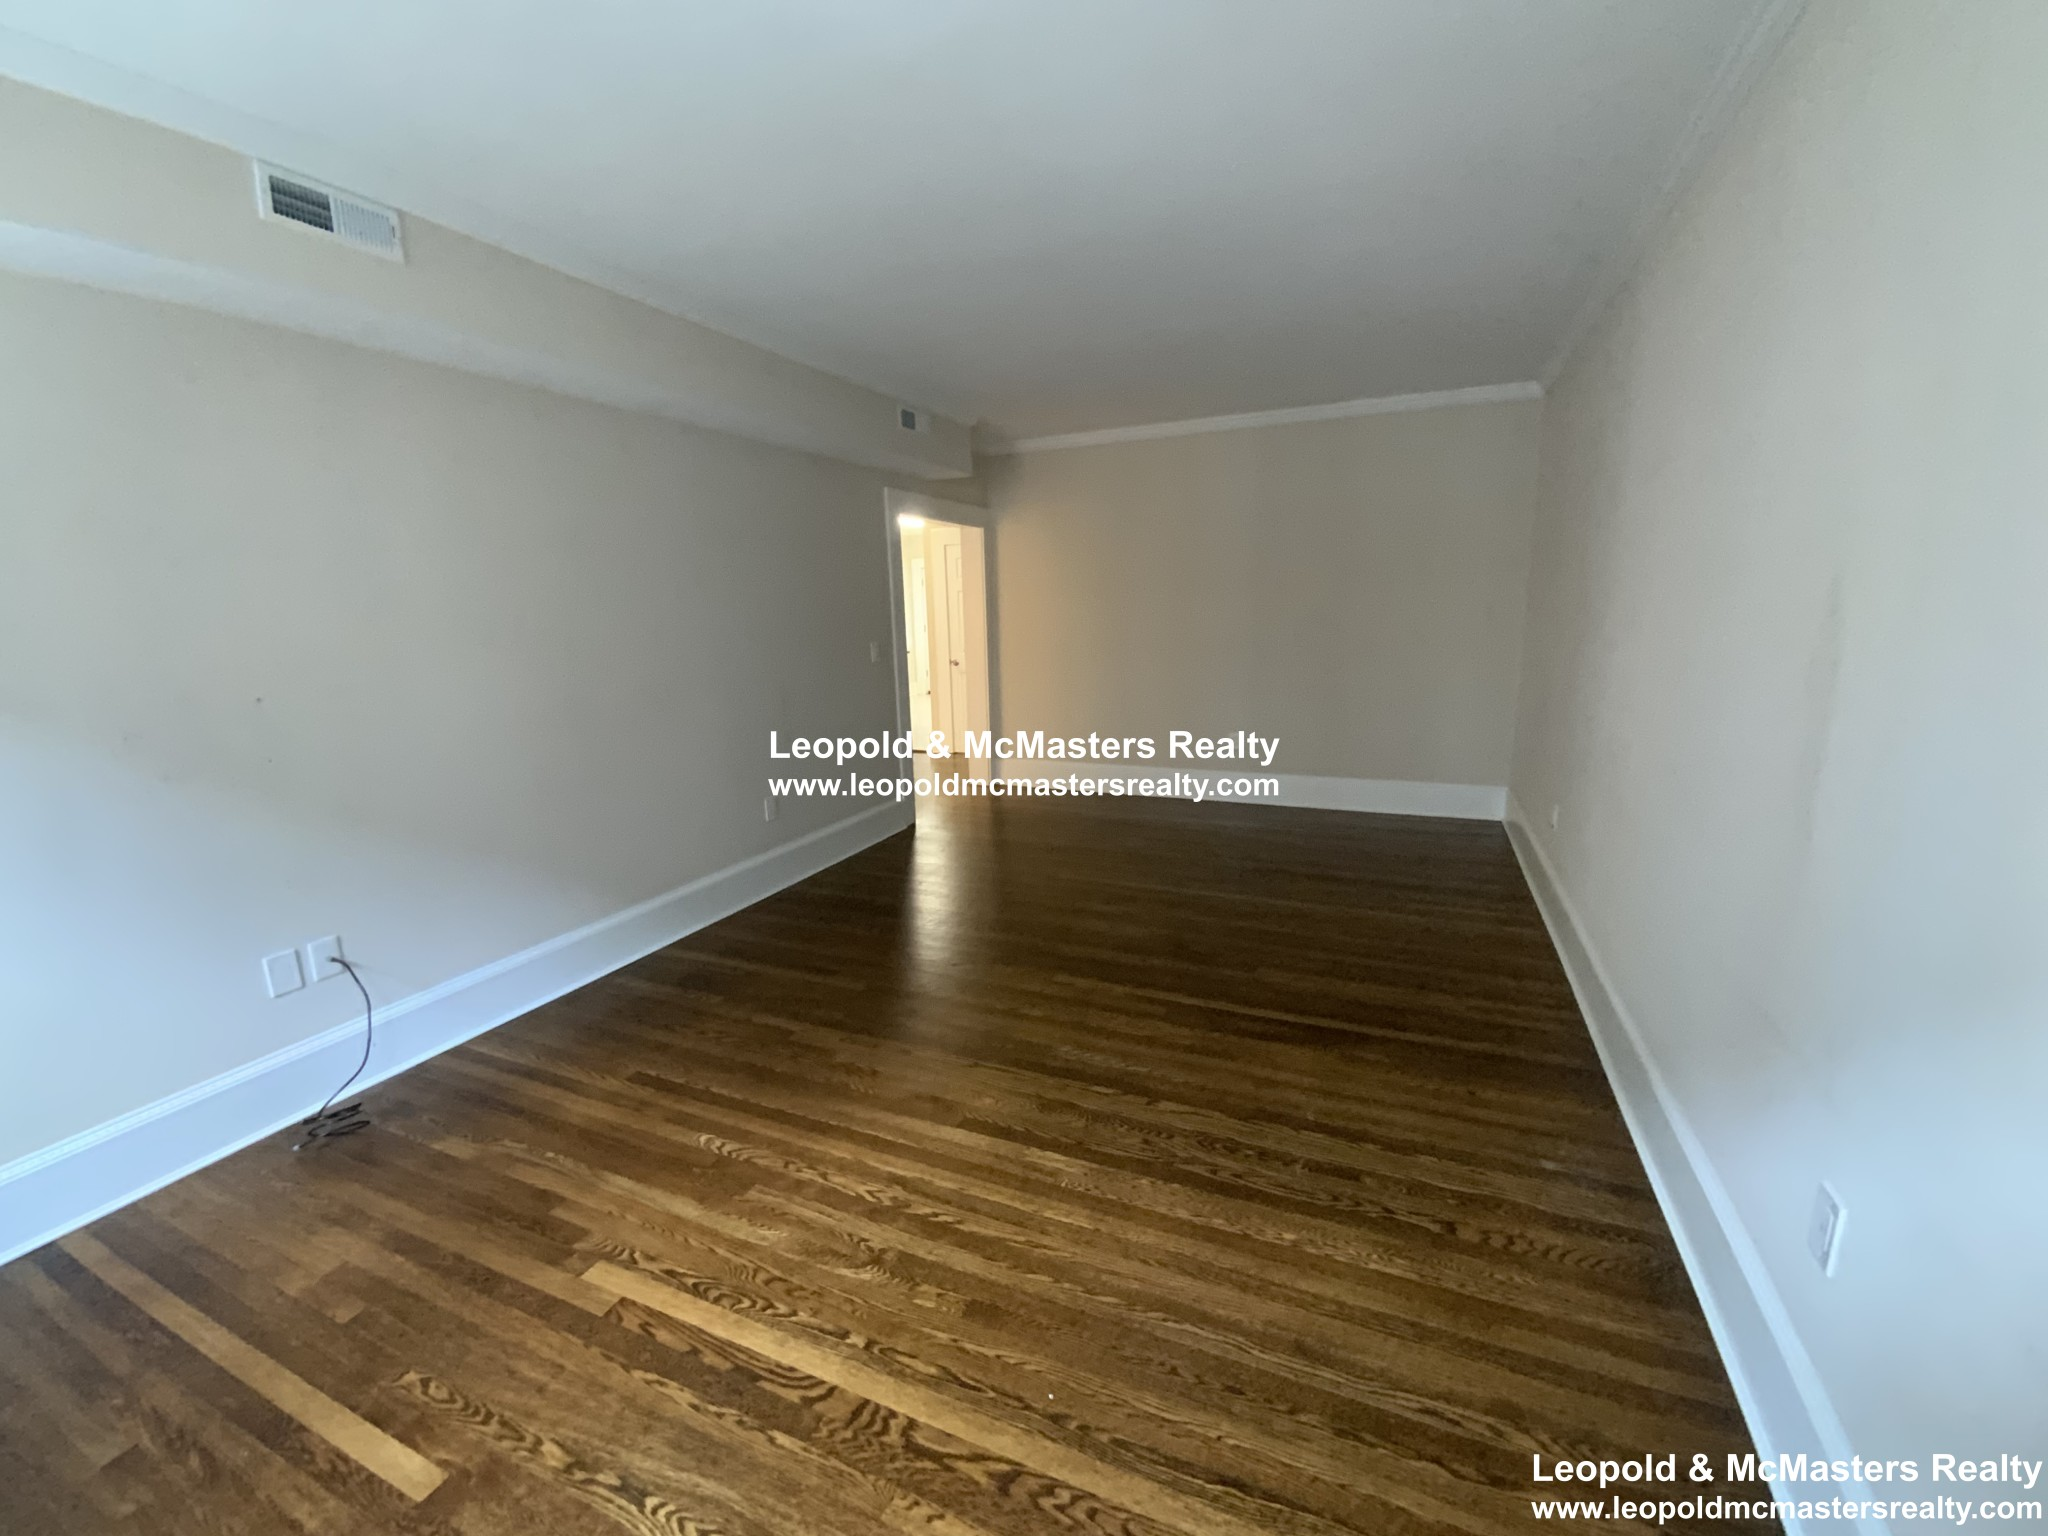 2 Beds, 1 Bath apartment in Brookline for $2,995